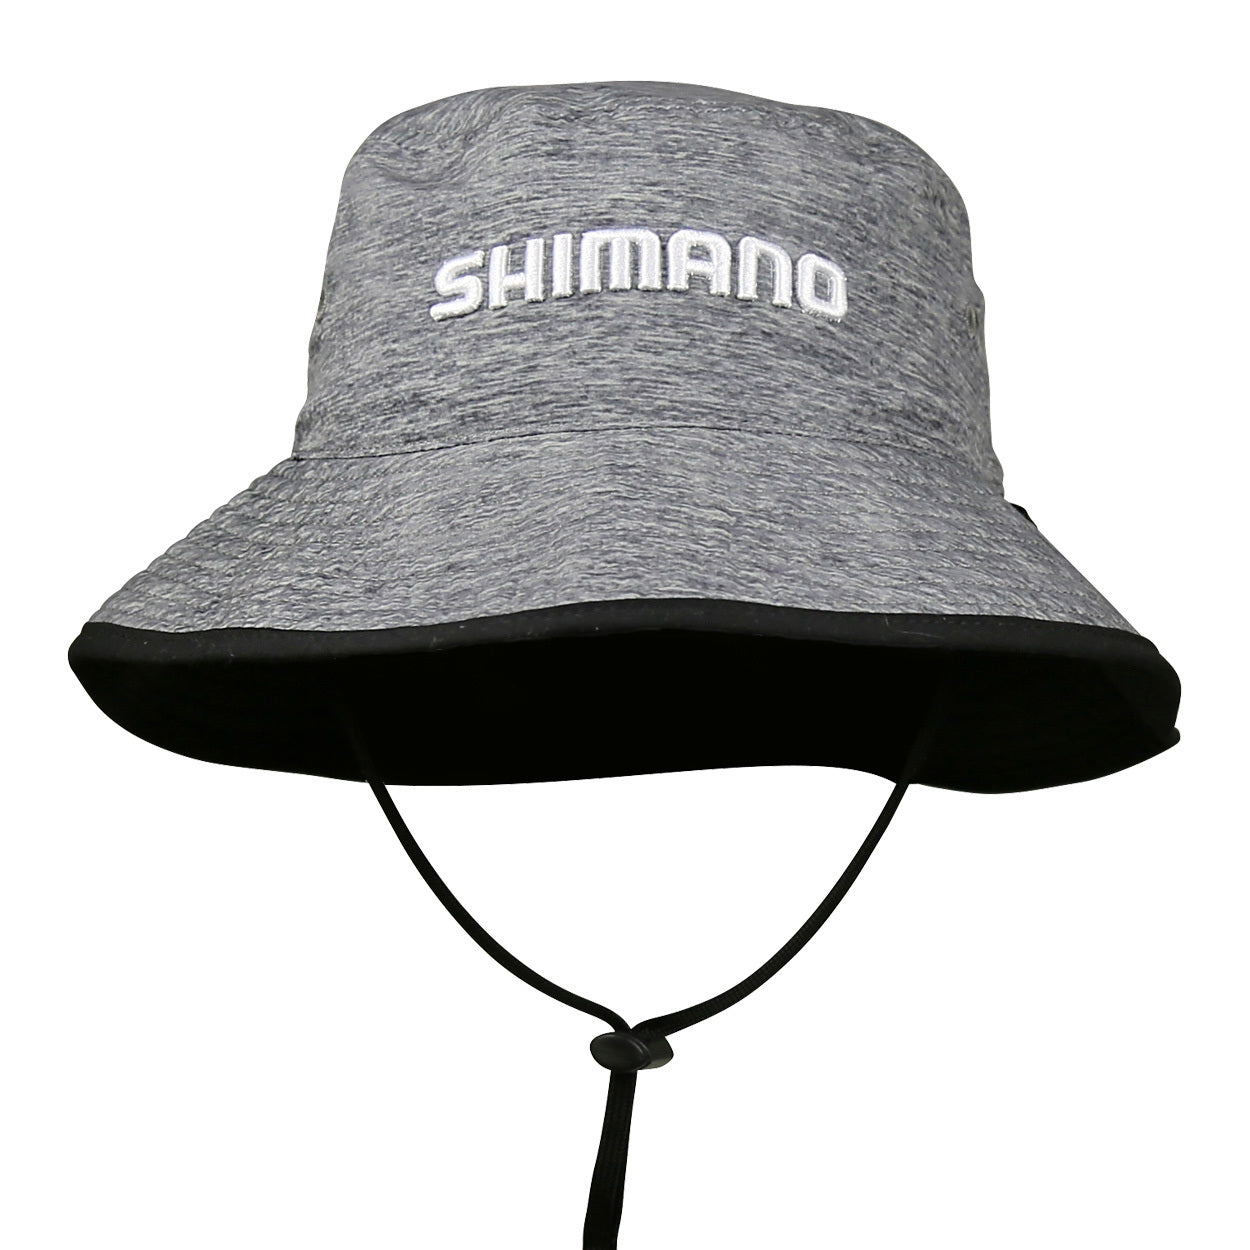 Shimano Bucket Hat - Dark Wash